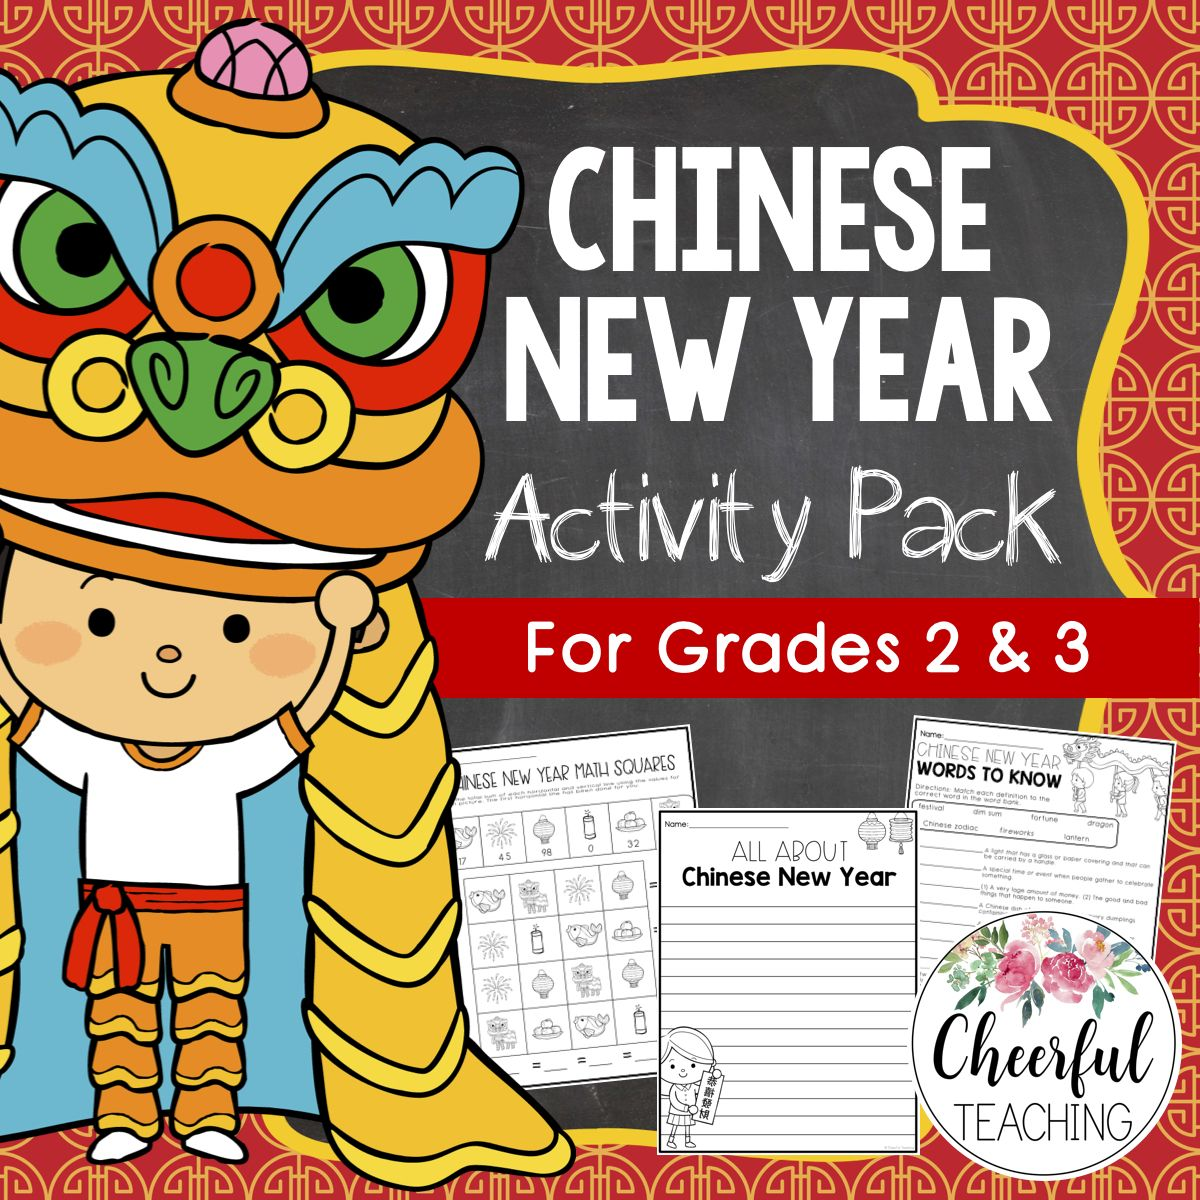 Chinese New Year Activity Pack